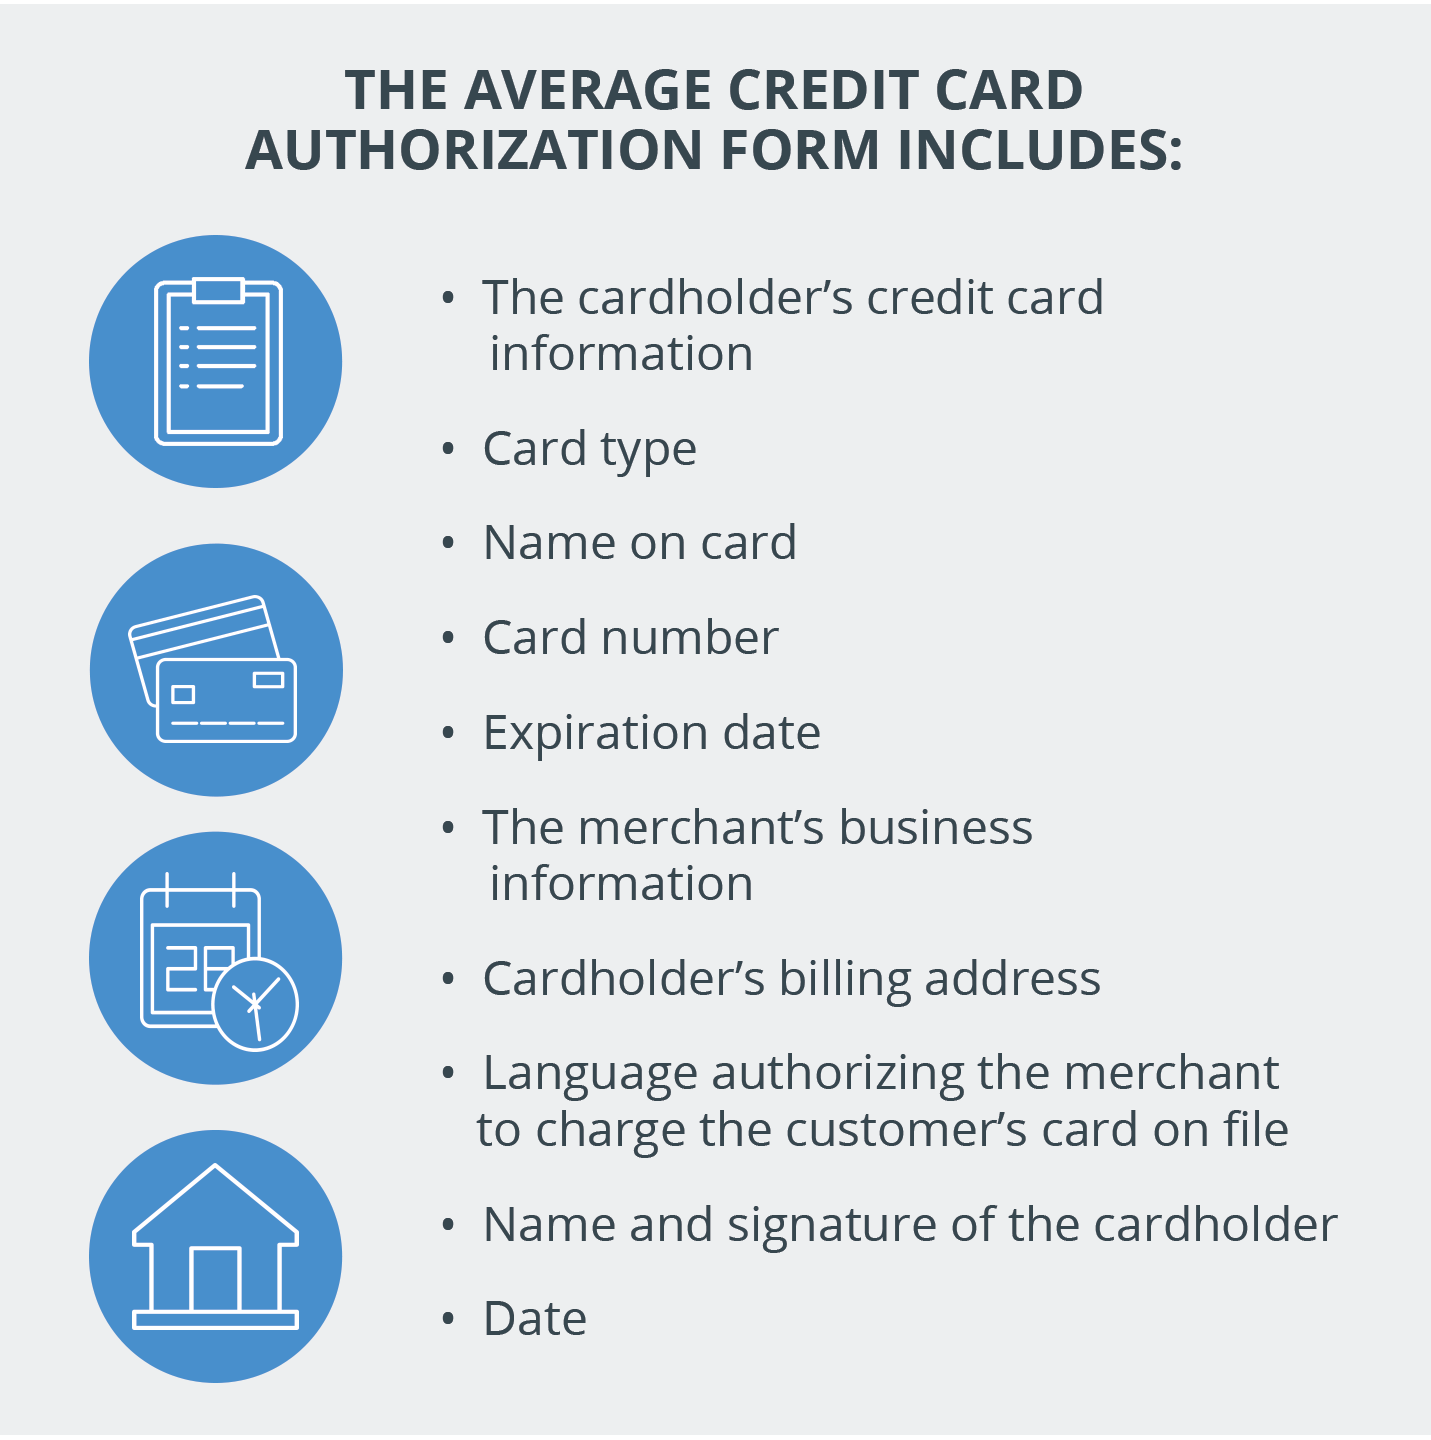 What the Average Credit Card Authorization Form Includes